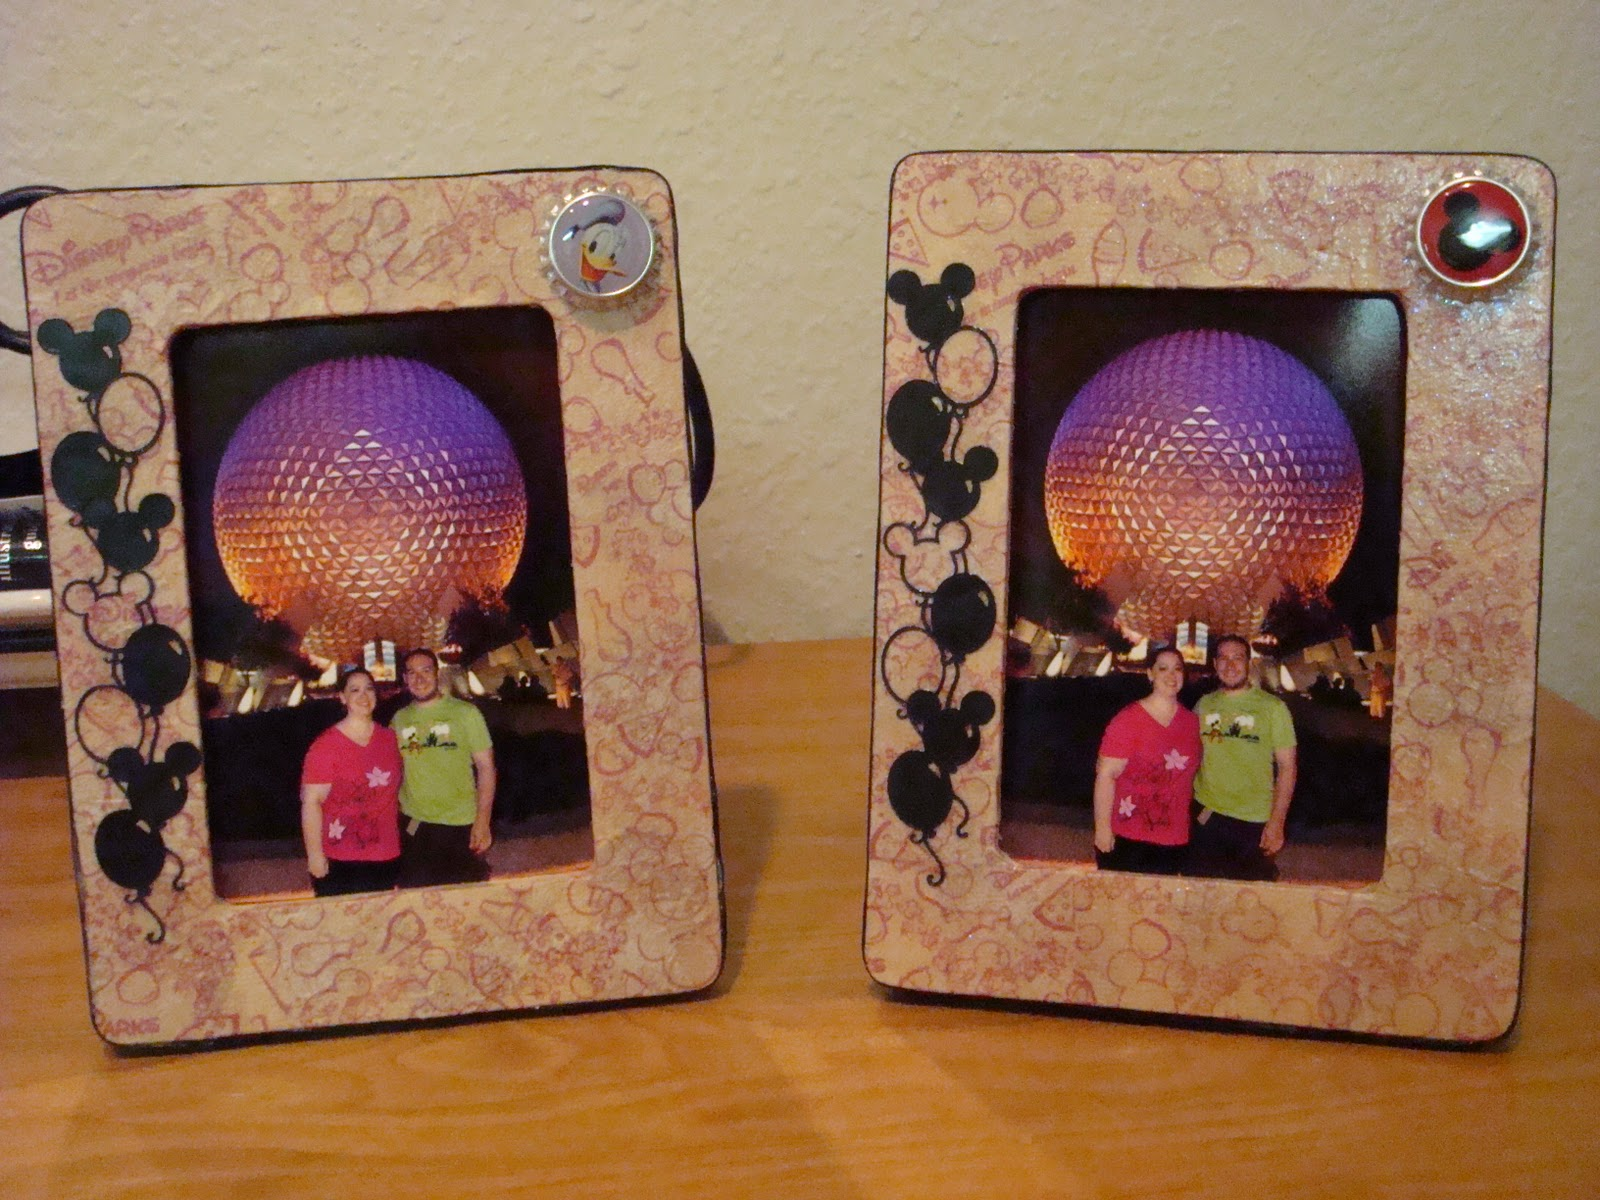 his and hers photo frames ones in ct while the other is in tx - Disney Picture Frames